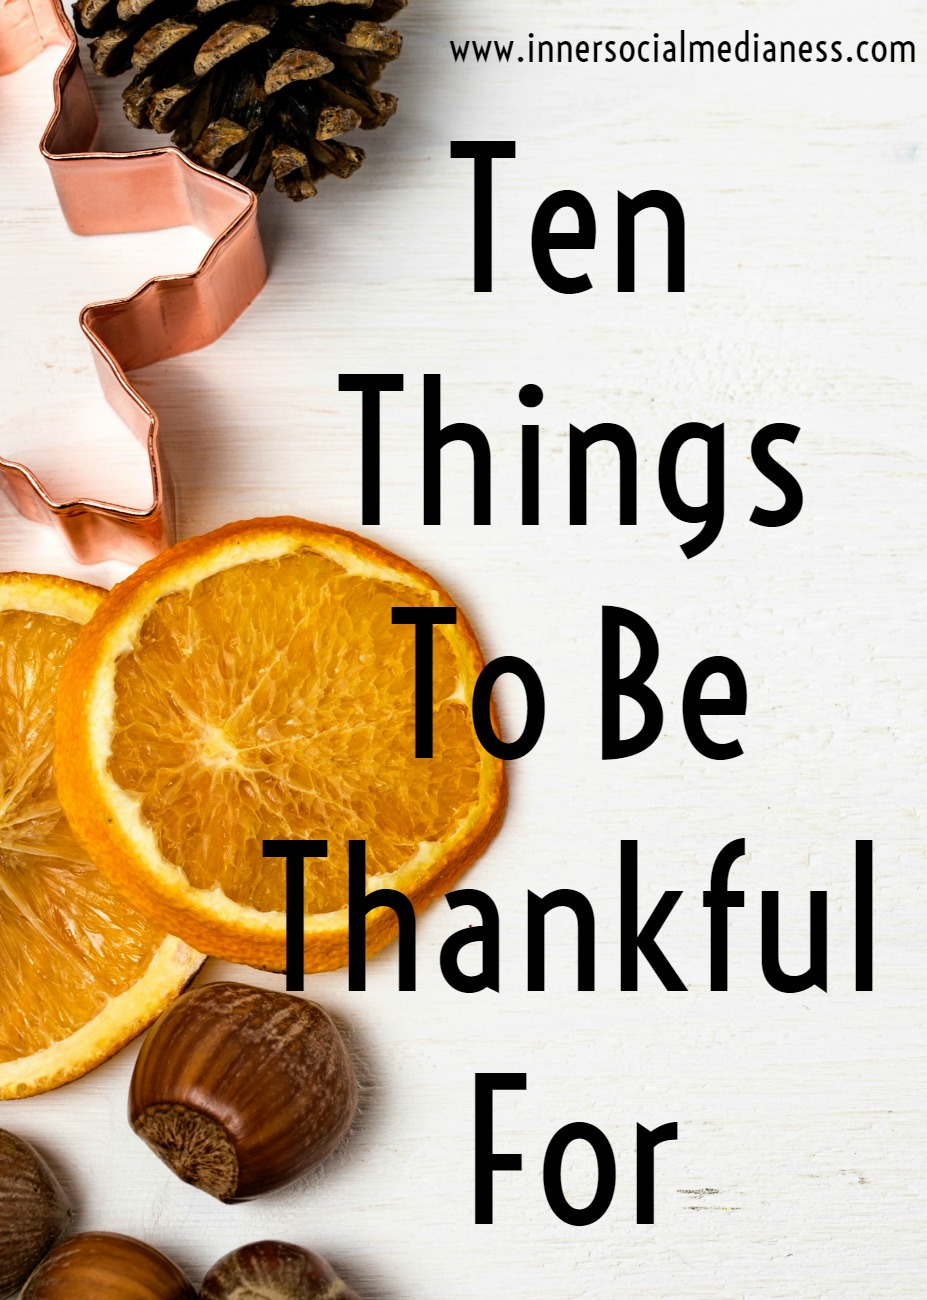 10 Things to Be Thankful For -  Sometimes, you just need to take a step back and be thankful for the amazing things in your life rather than focusing on these social media metrics that we've convinced ourselves are oh-so-important. As we step into the holiday season, let's all take a moment to be thankful for these things that we take for granted.